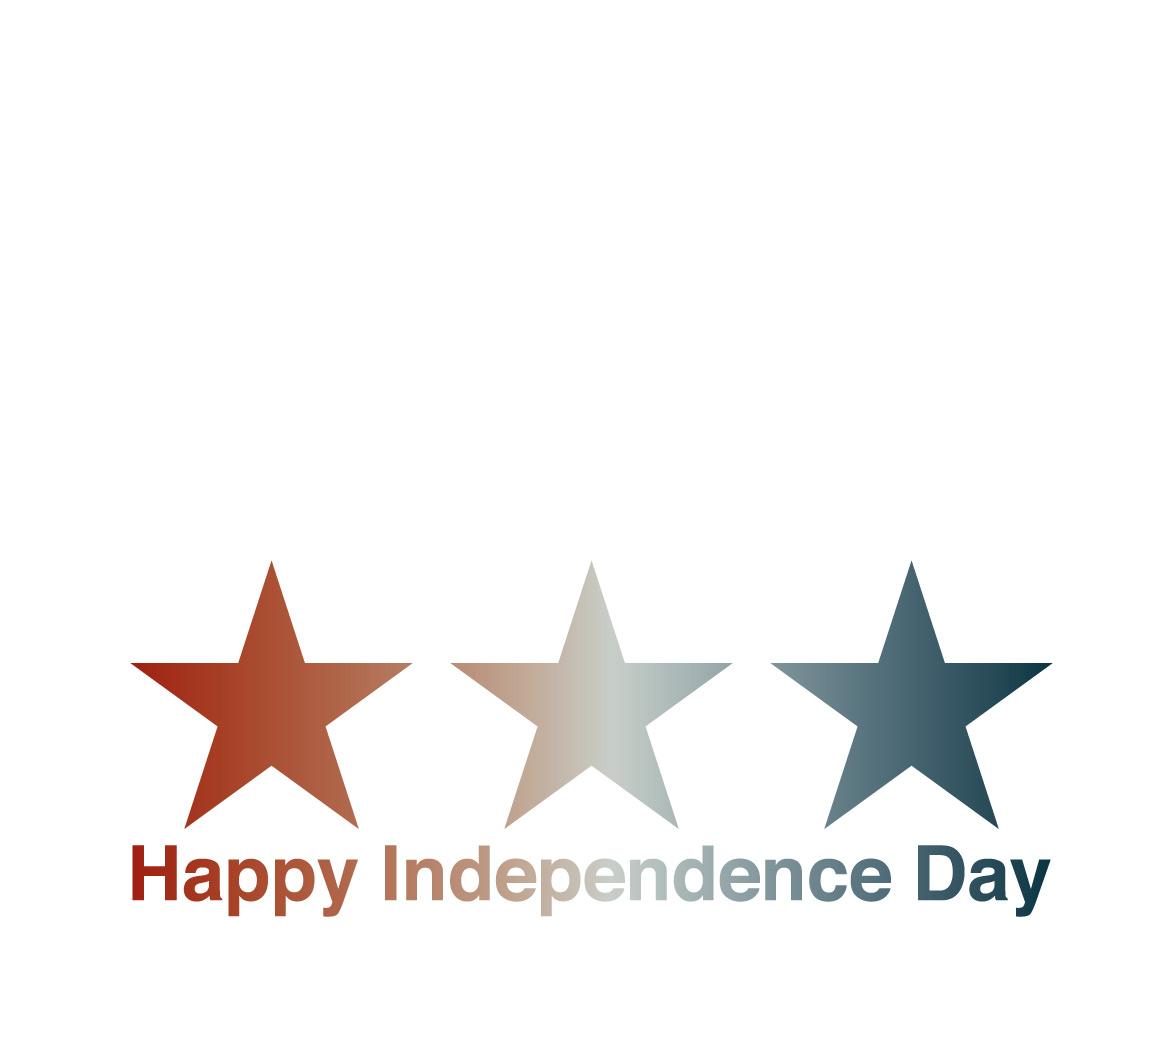 Happy Independence Day from Joe Horvath Visuals. Stars and Stripes logo design. Wausau, Wisconsin